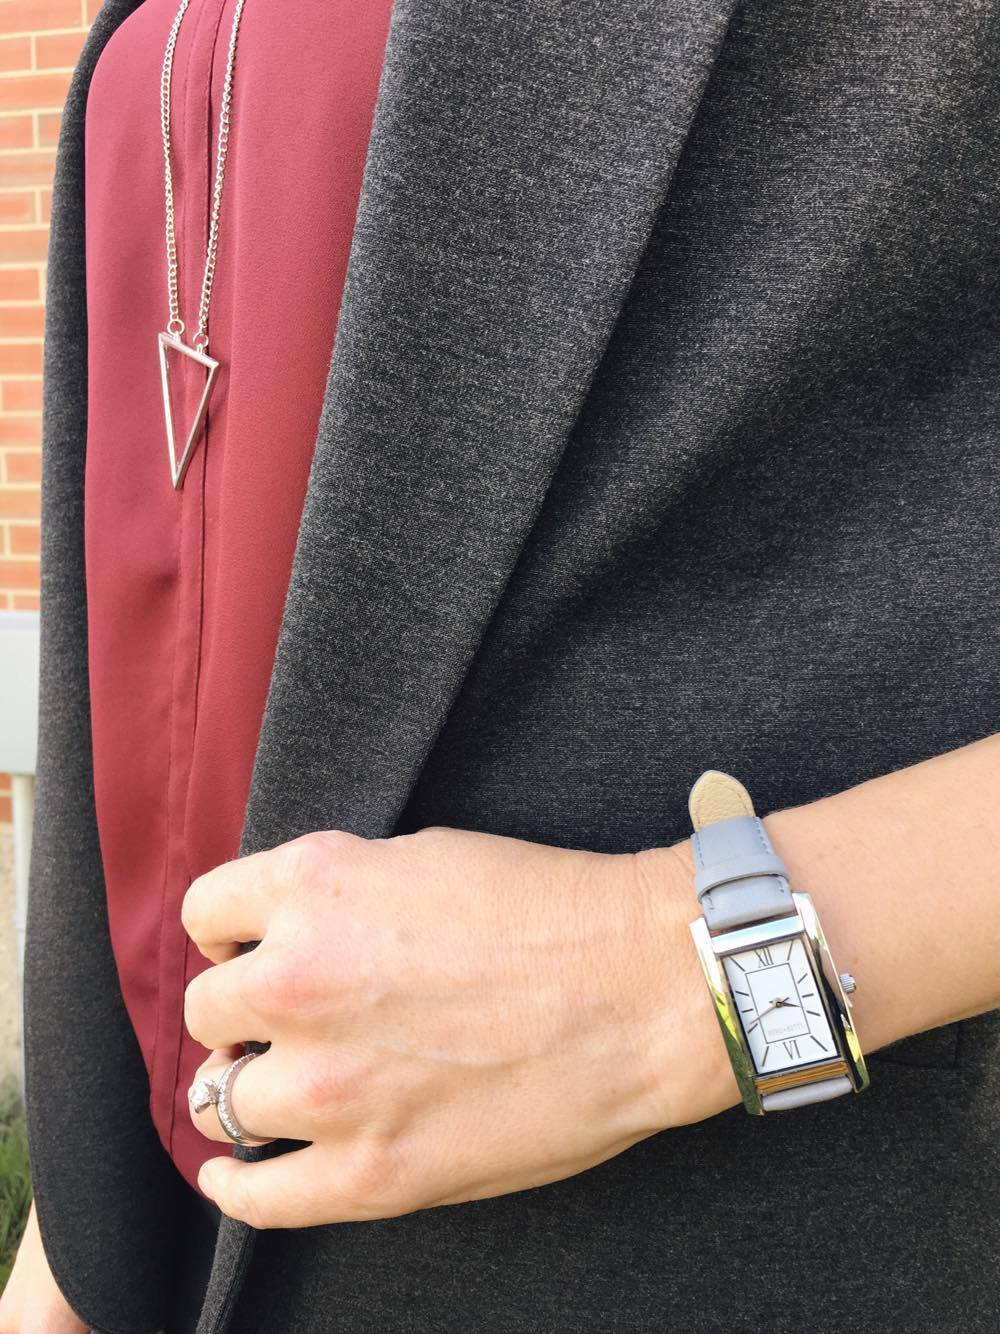 Don't forget your accessories to bring your outfit to the next level....like our Edmonton-based Berg + Betts watches (made from upcycled leather)!!